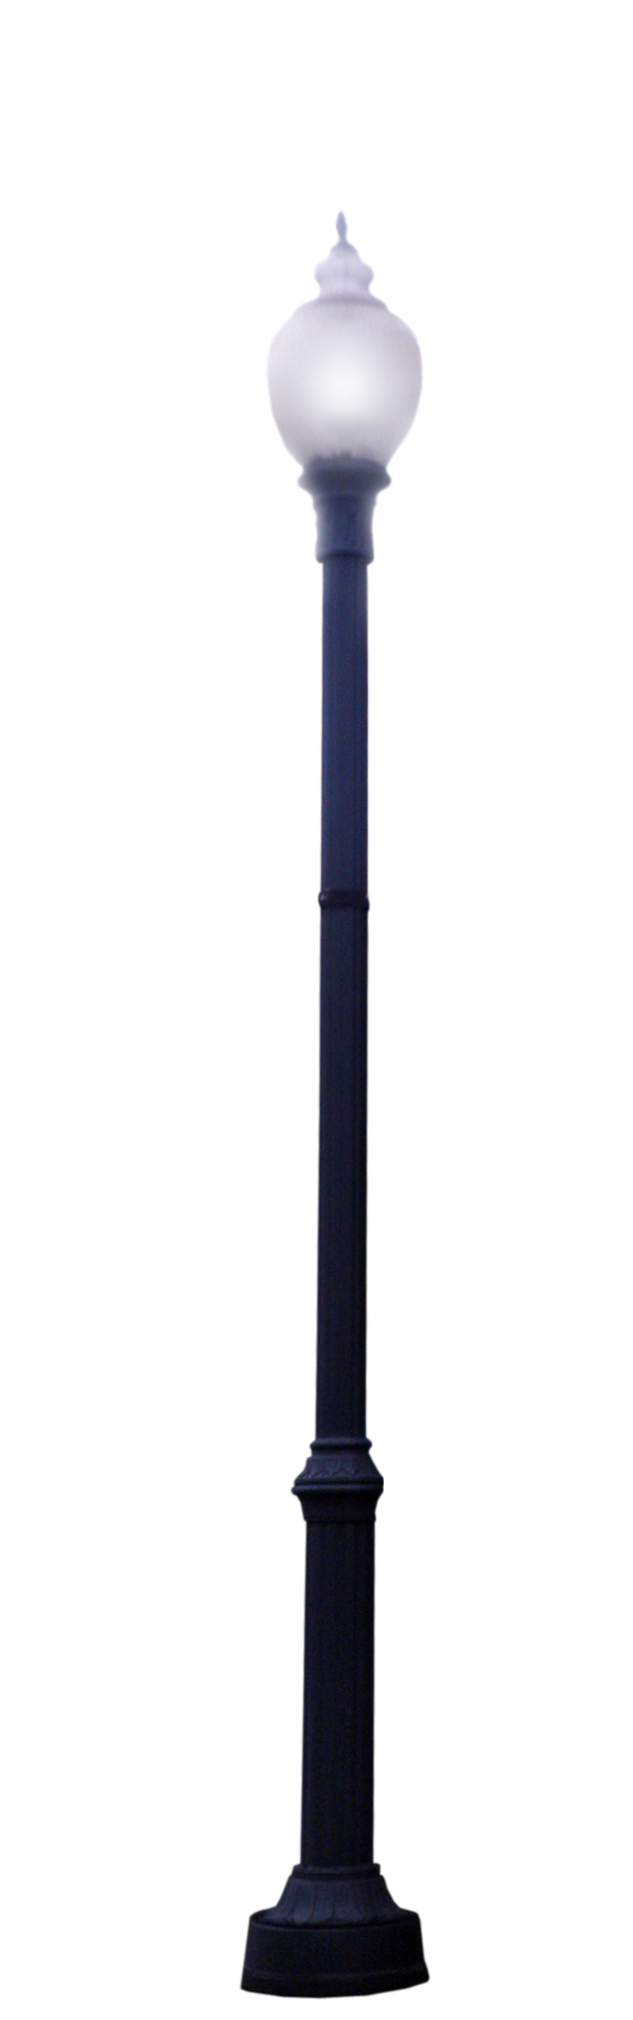 Street lamp png. Light glowing by thy